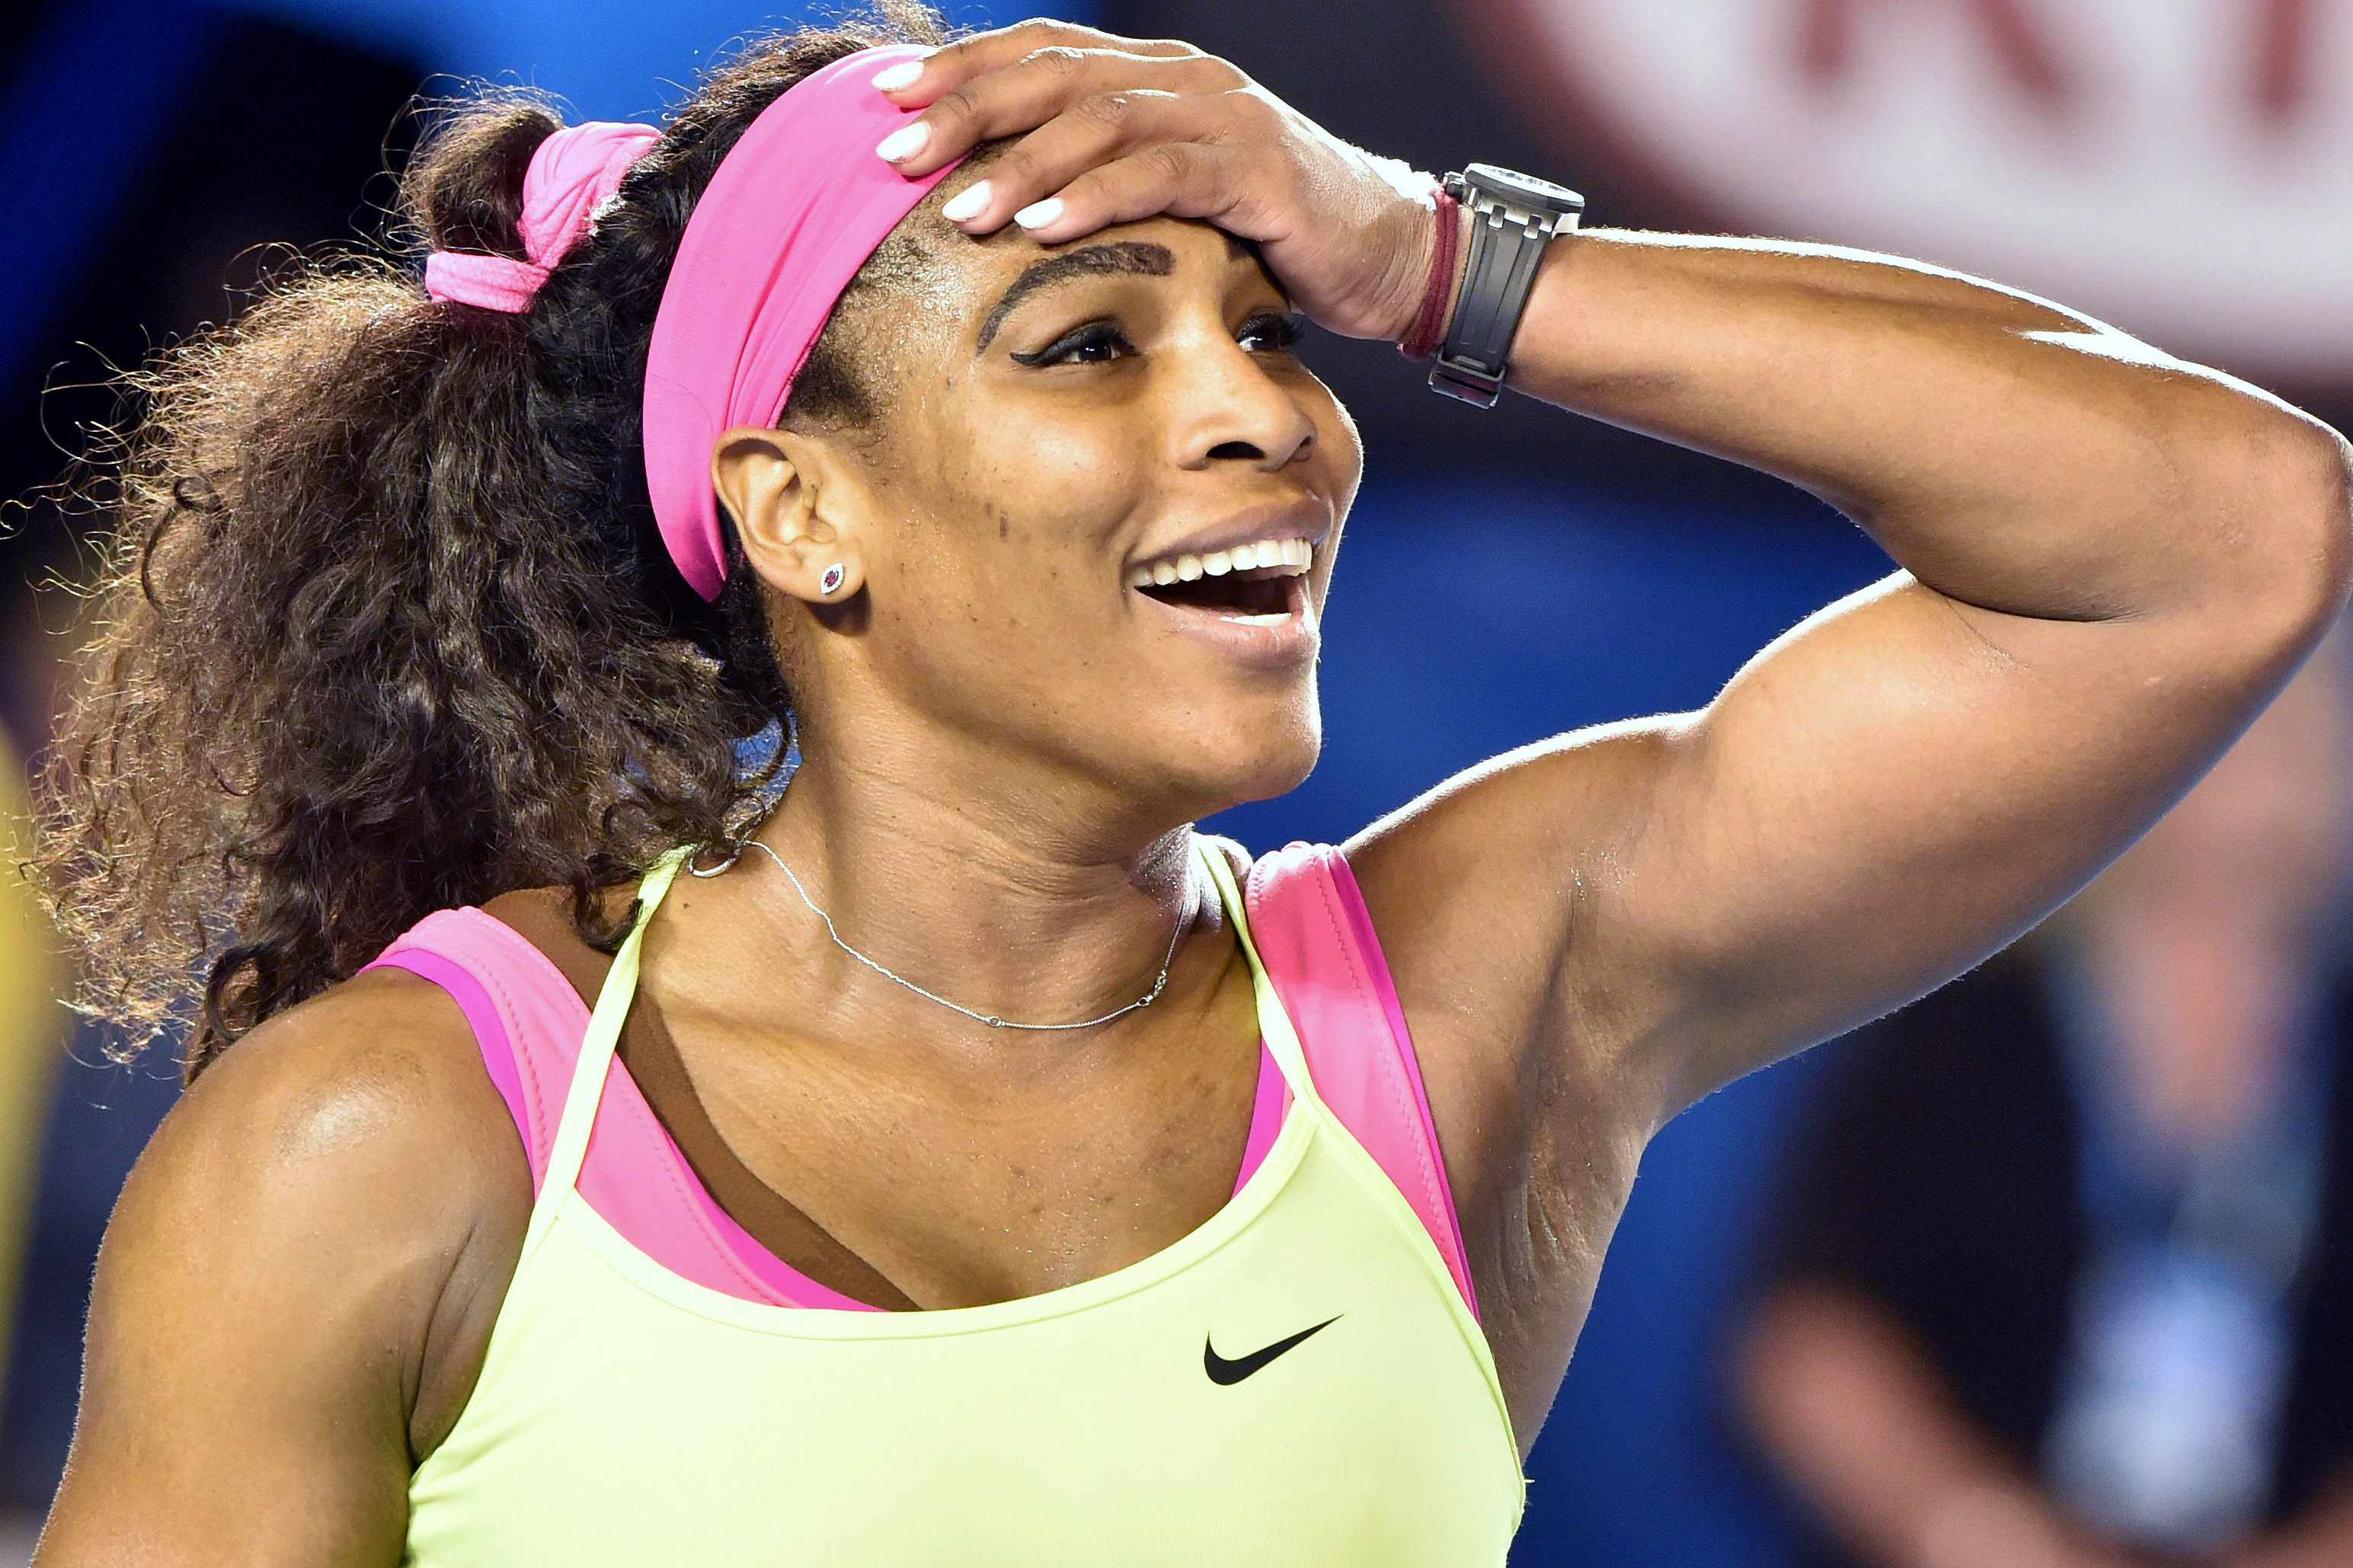 Serena Williams, Wimbledon, Flushing Meadows, Tennis, WTA rankings, pregnancy break, Tennis ranking, US Open